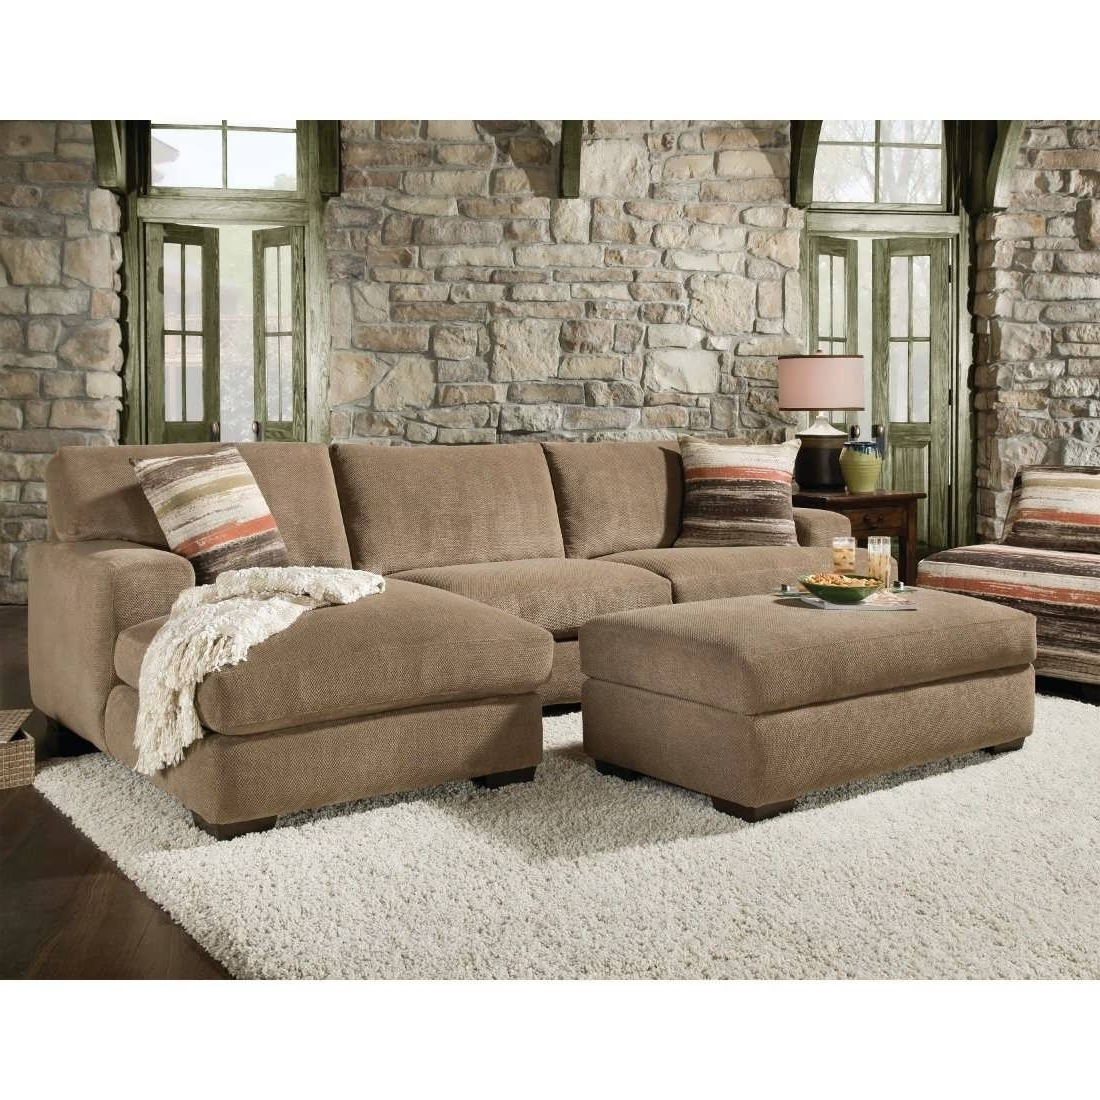 Well Liked Sofa : Wrap Around Couch Cream Leather Sectional Double Chaise Throughout Sectional Chaise Sofas (View 3 of 15)